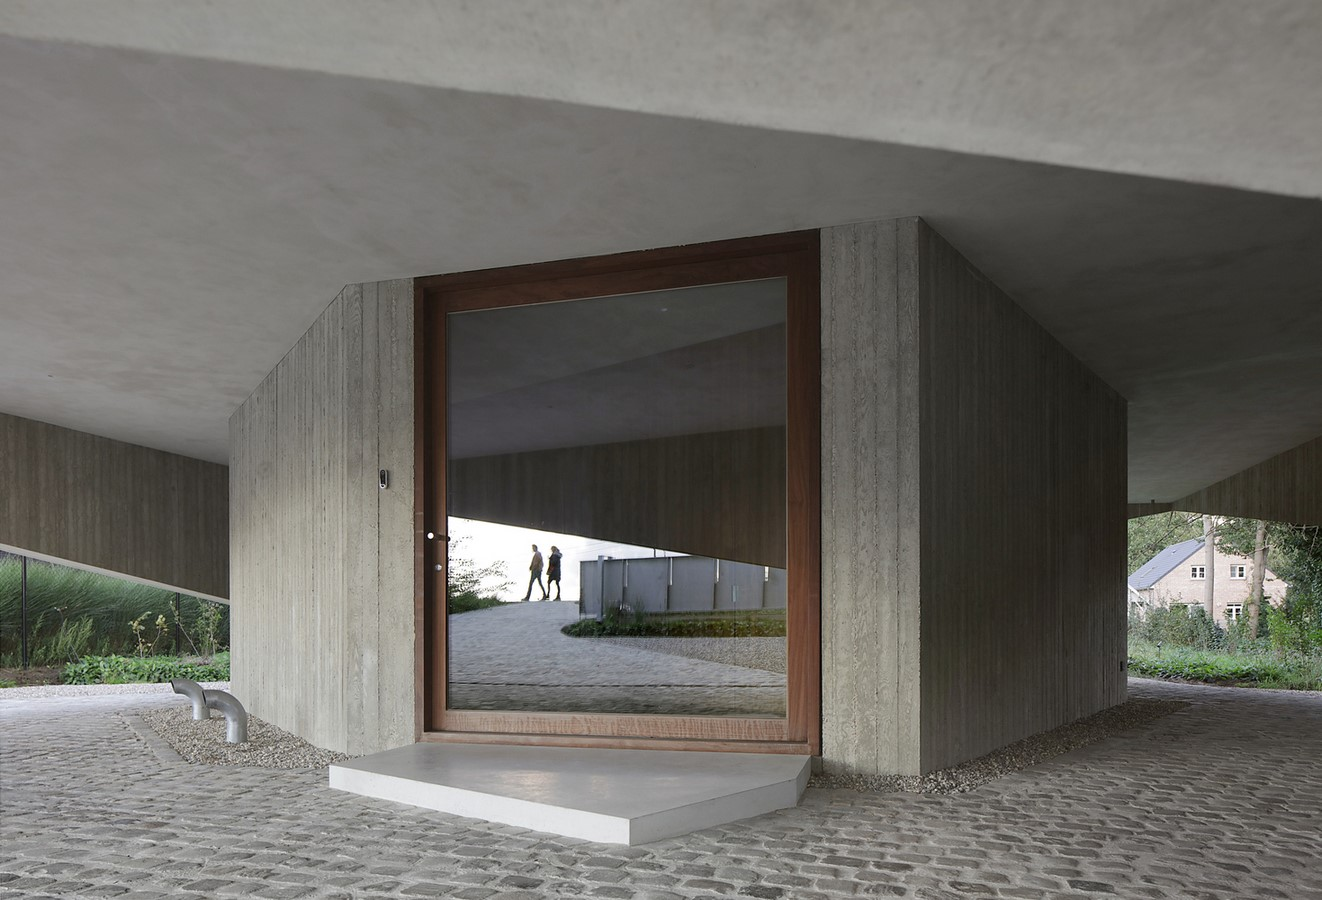 Belgian House Featuring Asymmetrical Angled Concrete Canopies designed by GRAUX & BAEYENS Architecten - Sheet4